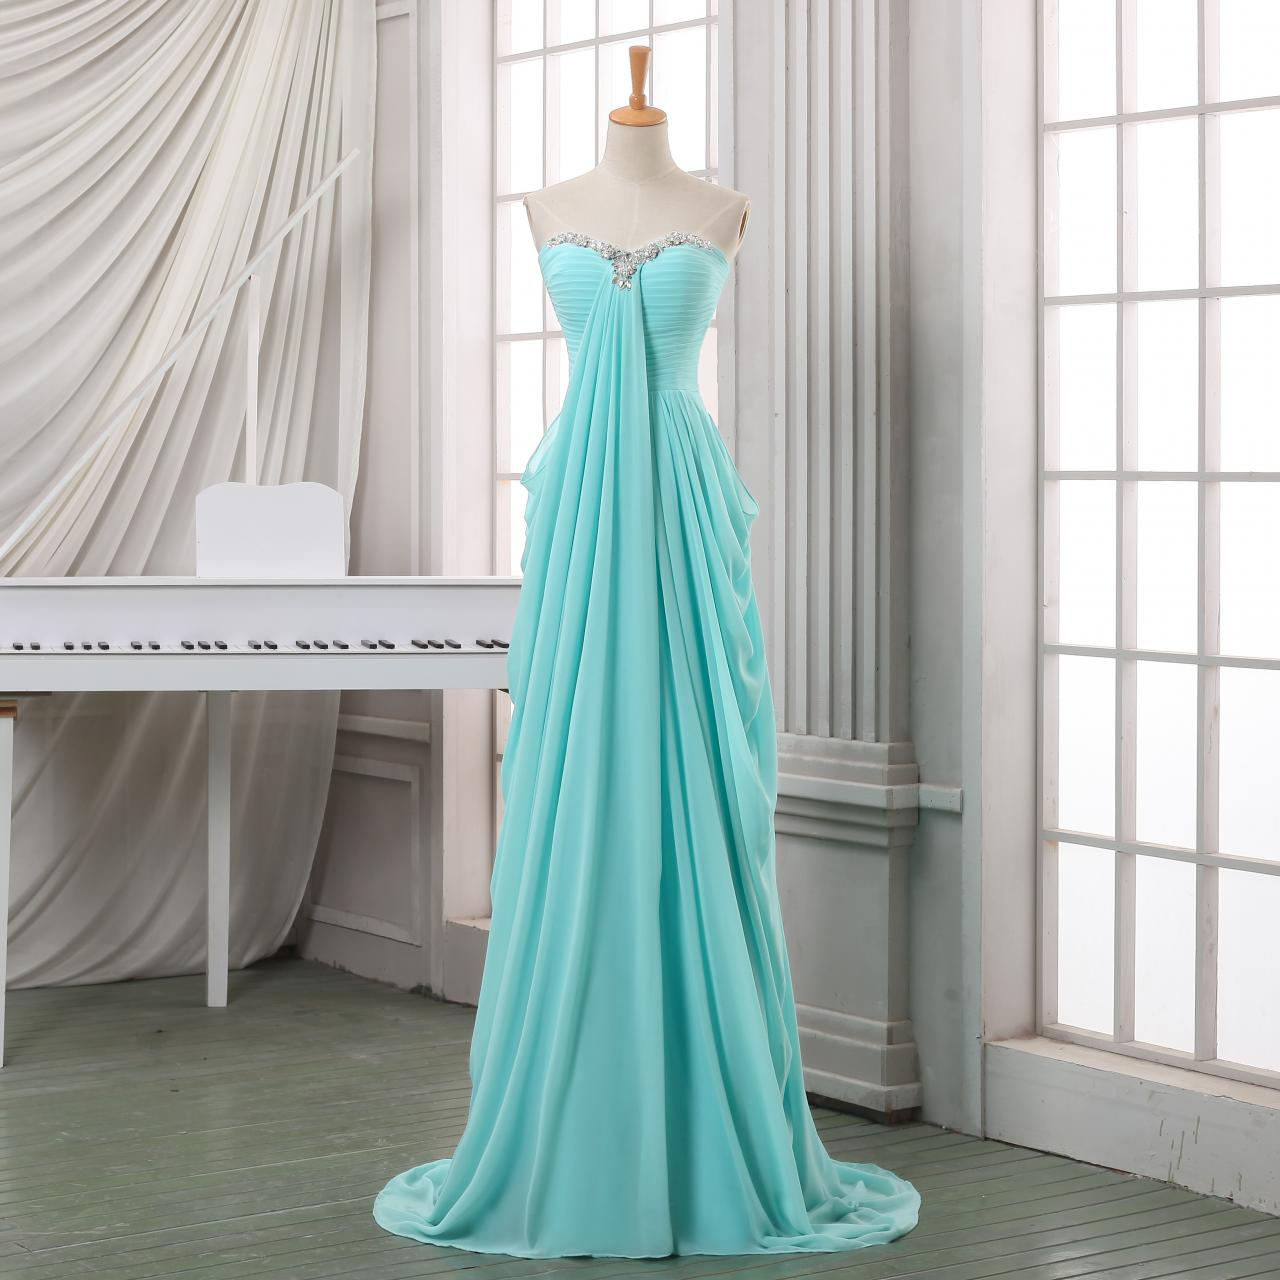 Ulass Long pleated chiffon prom dress,A line sweeetheart prom dress,baby blue chiffon long prom dresses,formal evening dress,long homecoming dress